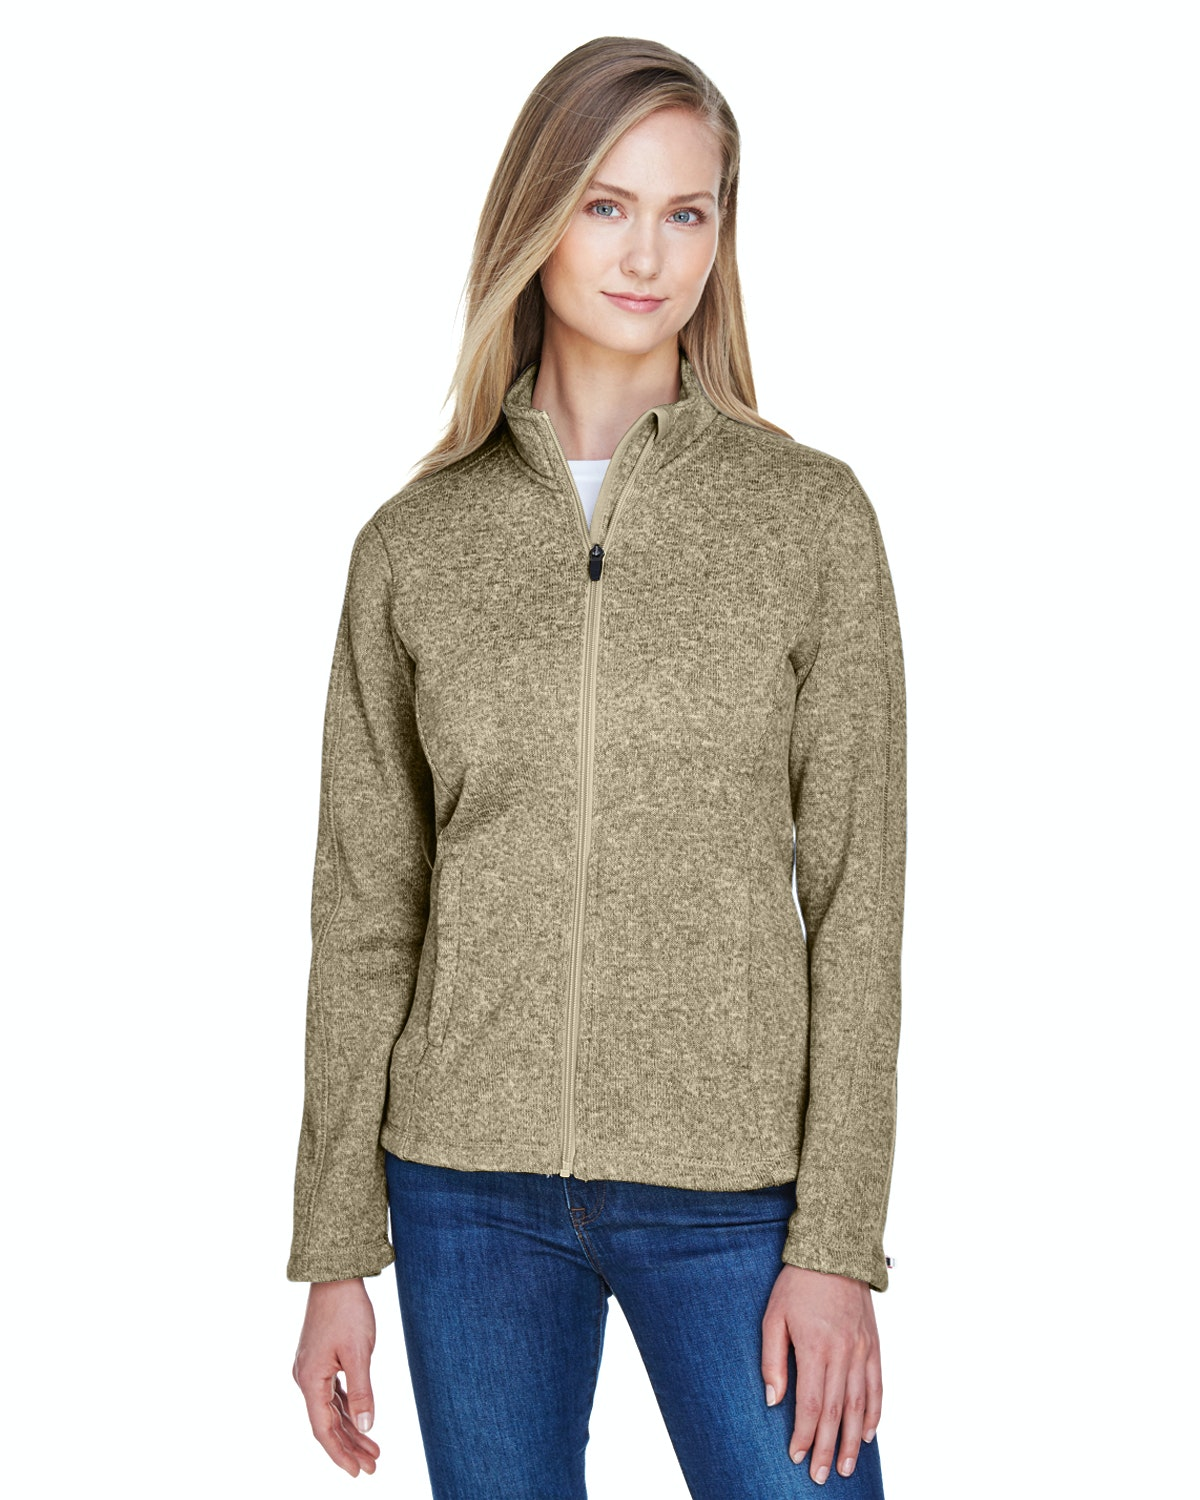 DG793W - Khaki Heather